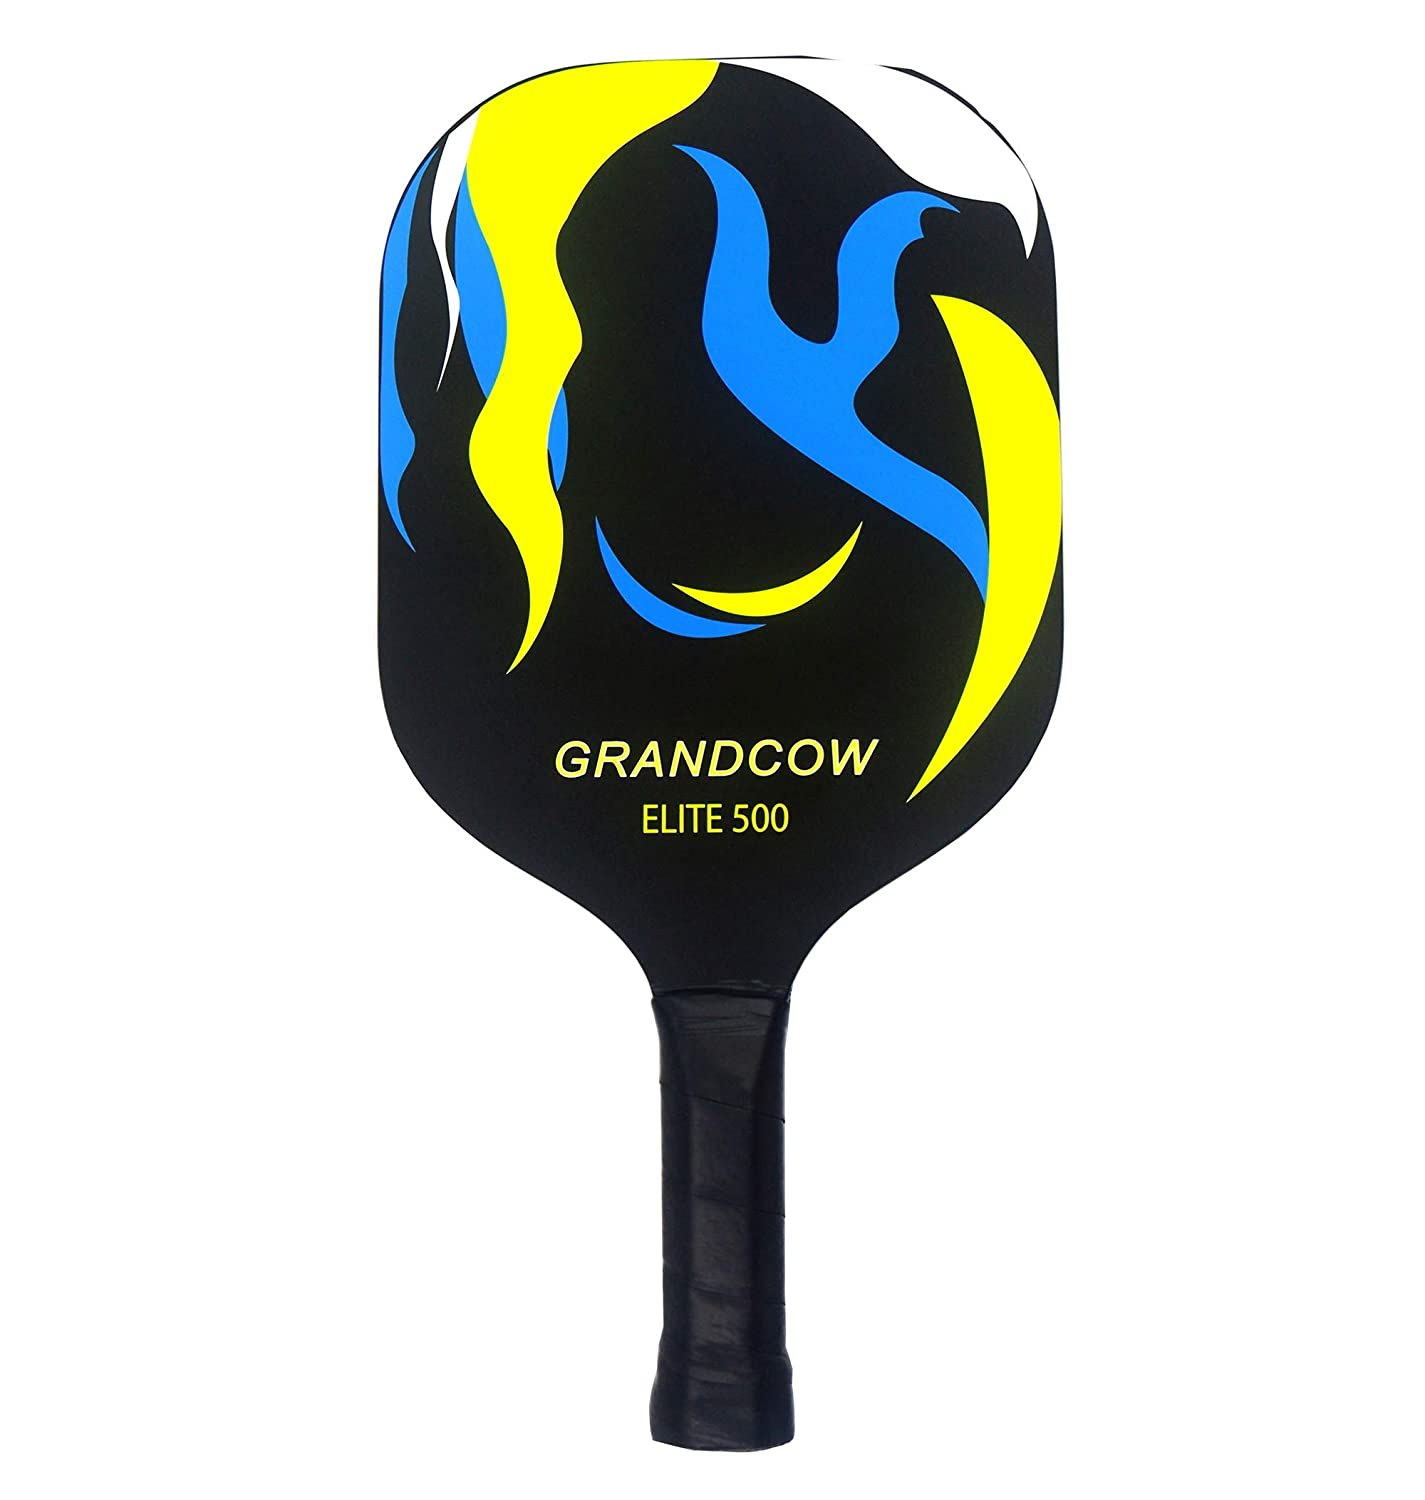 Amazon.com : GRANDCOW Graphite Pickleball Paddle, Carbon Fiber Composite with Polypro Honeycomb Core Pickleball Padel Racket : Sports & Outdoors